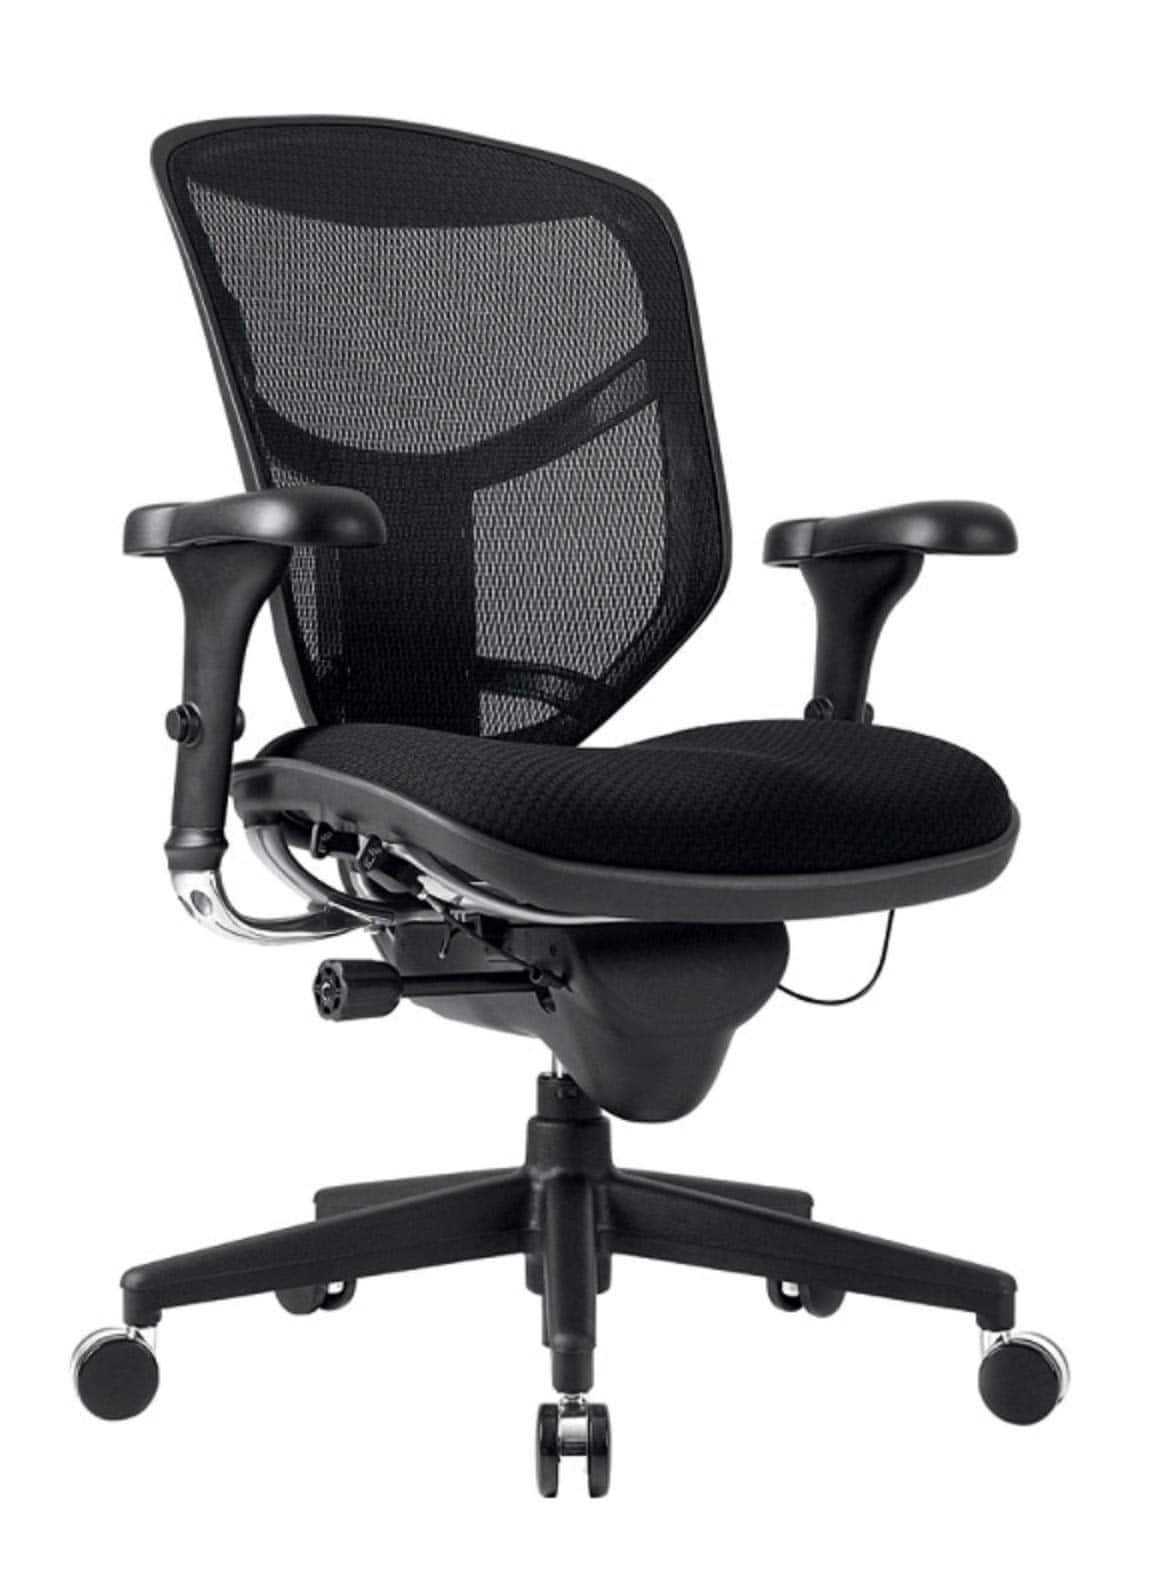 WorkPro 9000 Chair at Officesupply.com  $269.99 plus Tax Free shipping